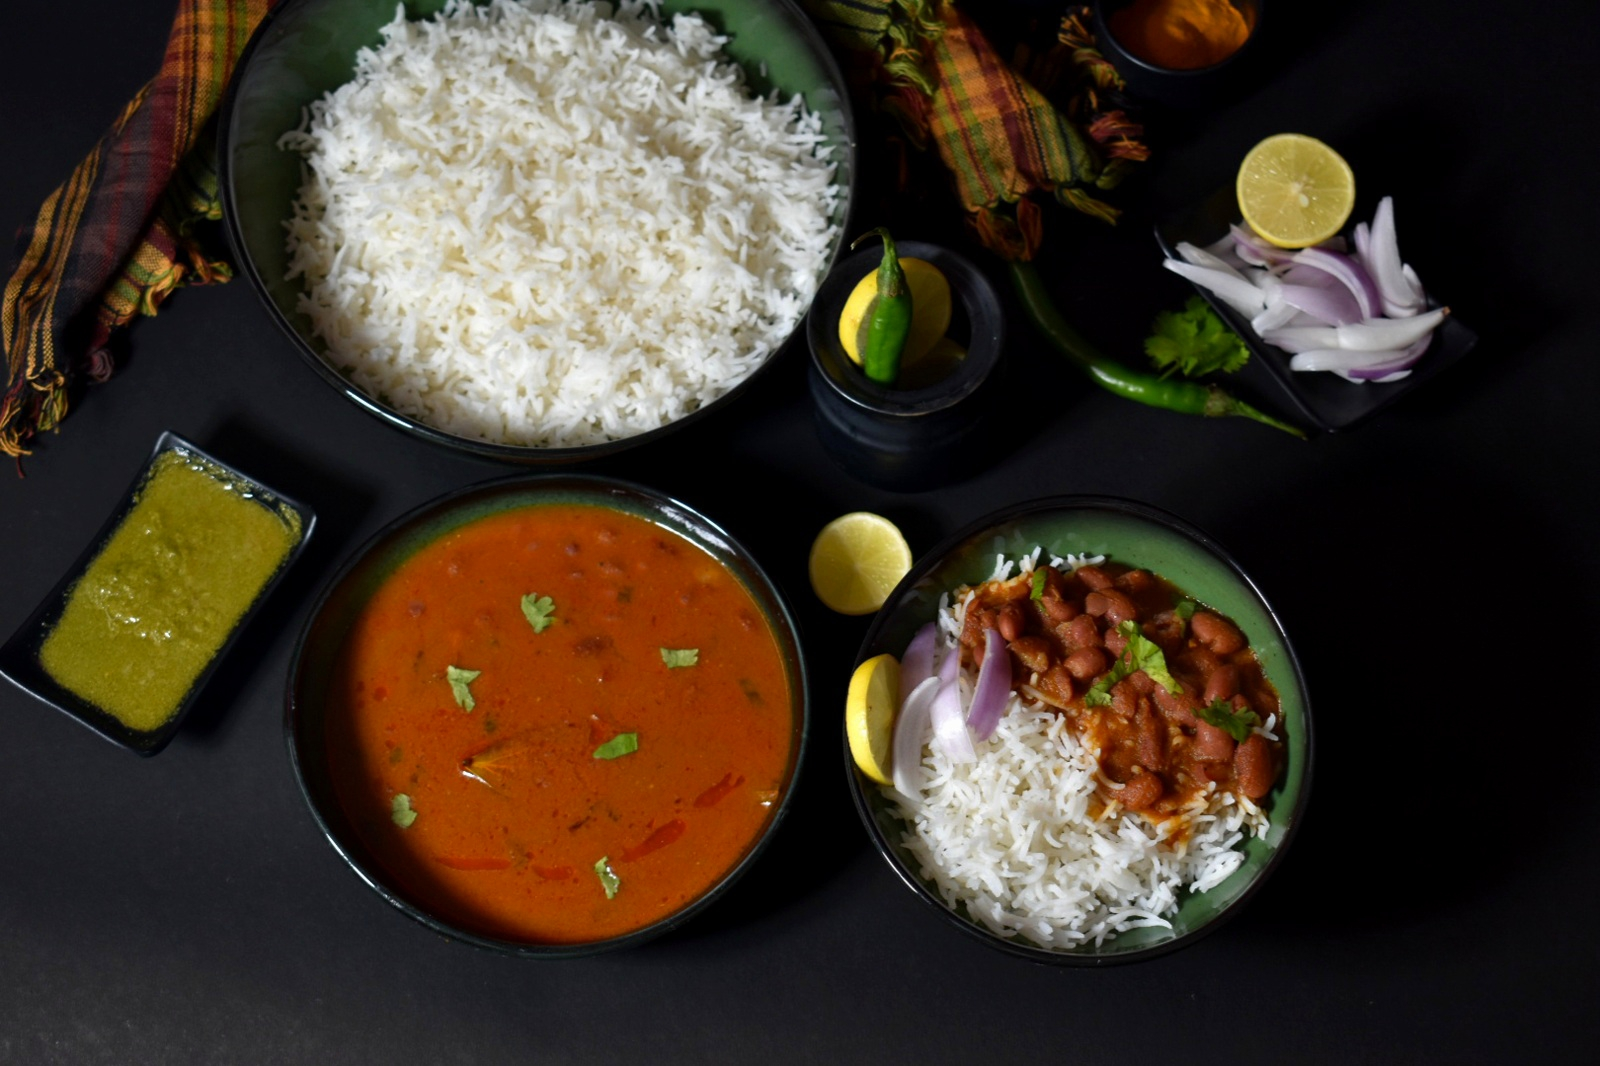 rajma chawal recipe